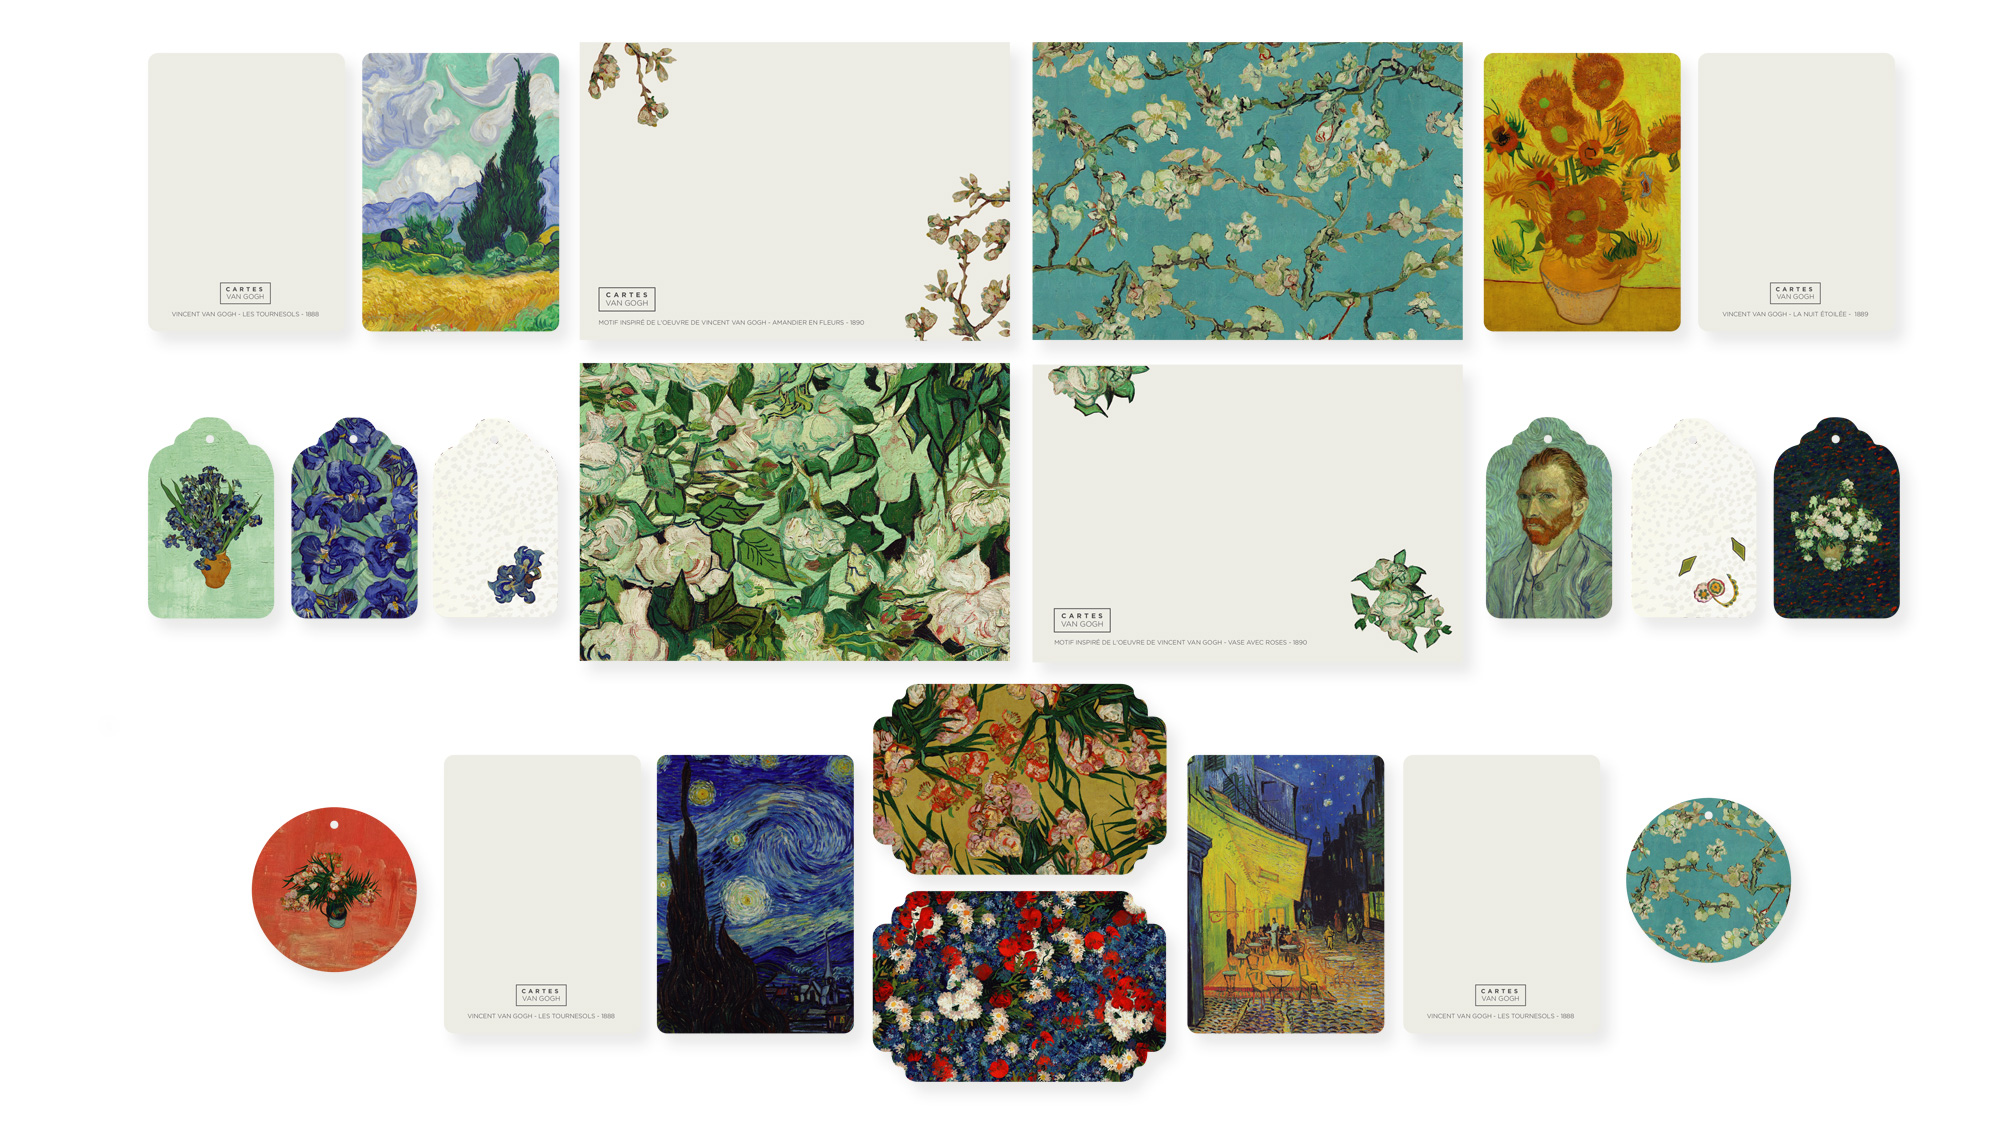 trc_van-gogh_stationery_full